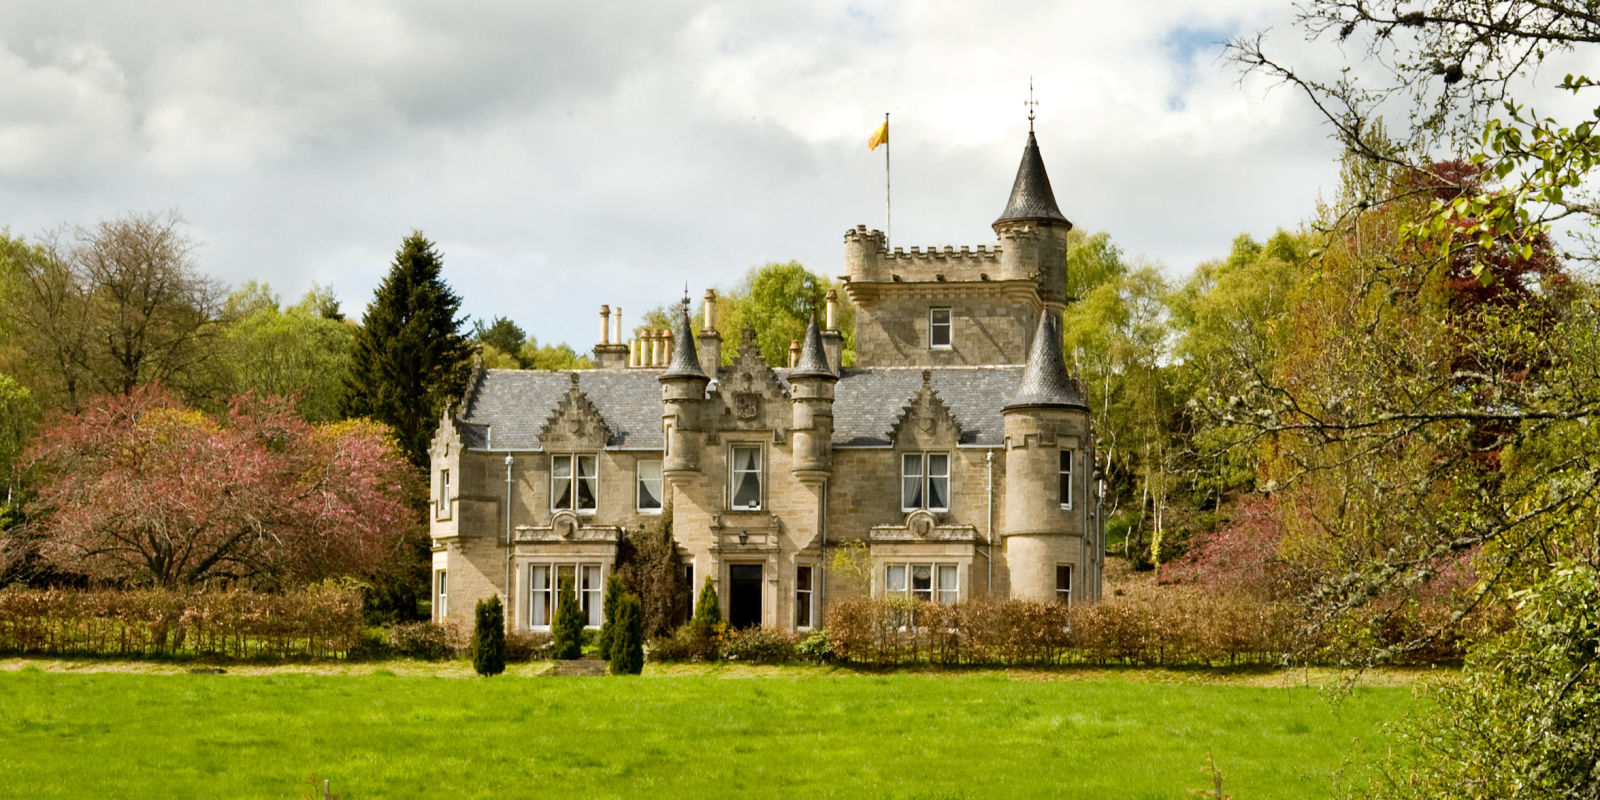 garden offices for sale scotland 11 bedroom scottish mansion rothes glen house for sale